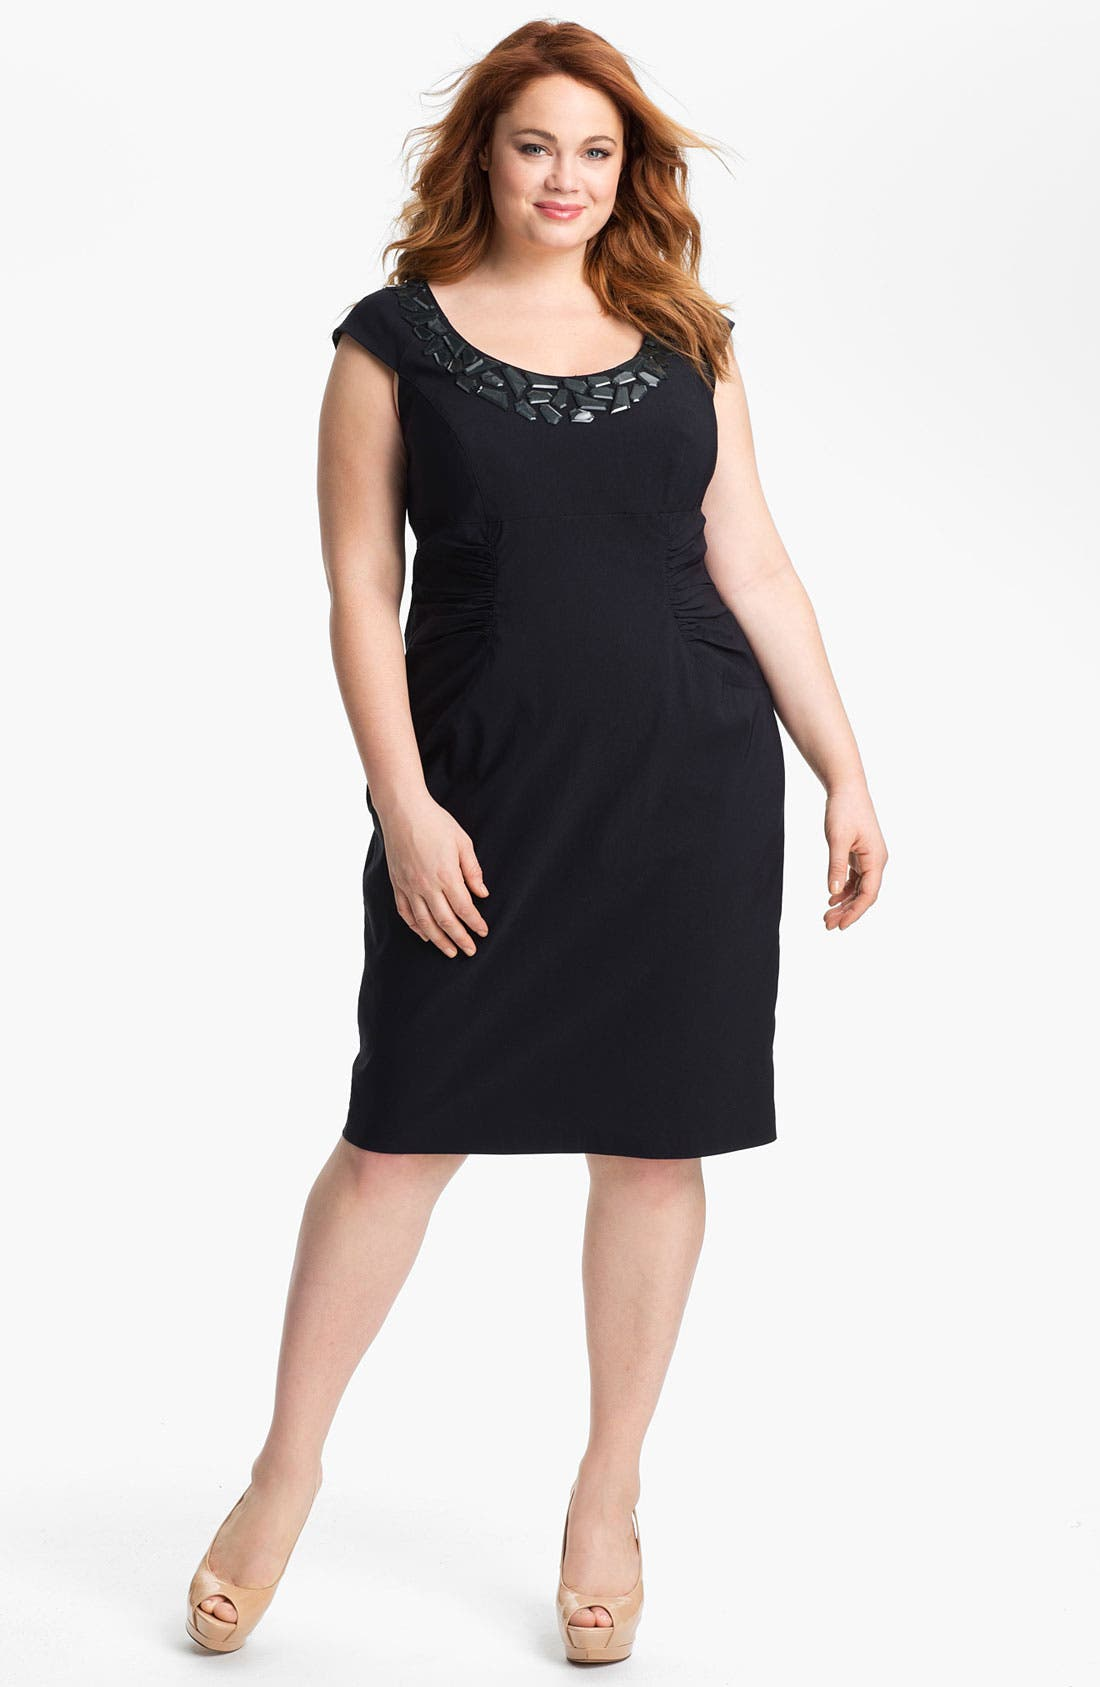 Alternate Image 1 Selected - Adrianna Papell Embellished Ruched Sheath Dress (Plus Size)